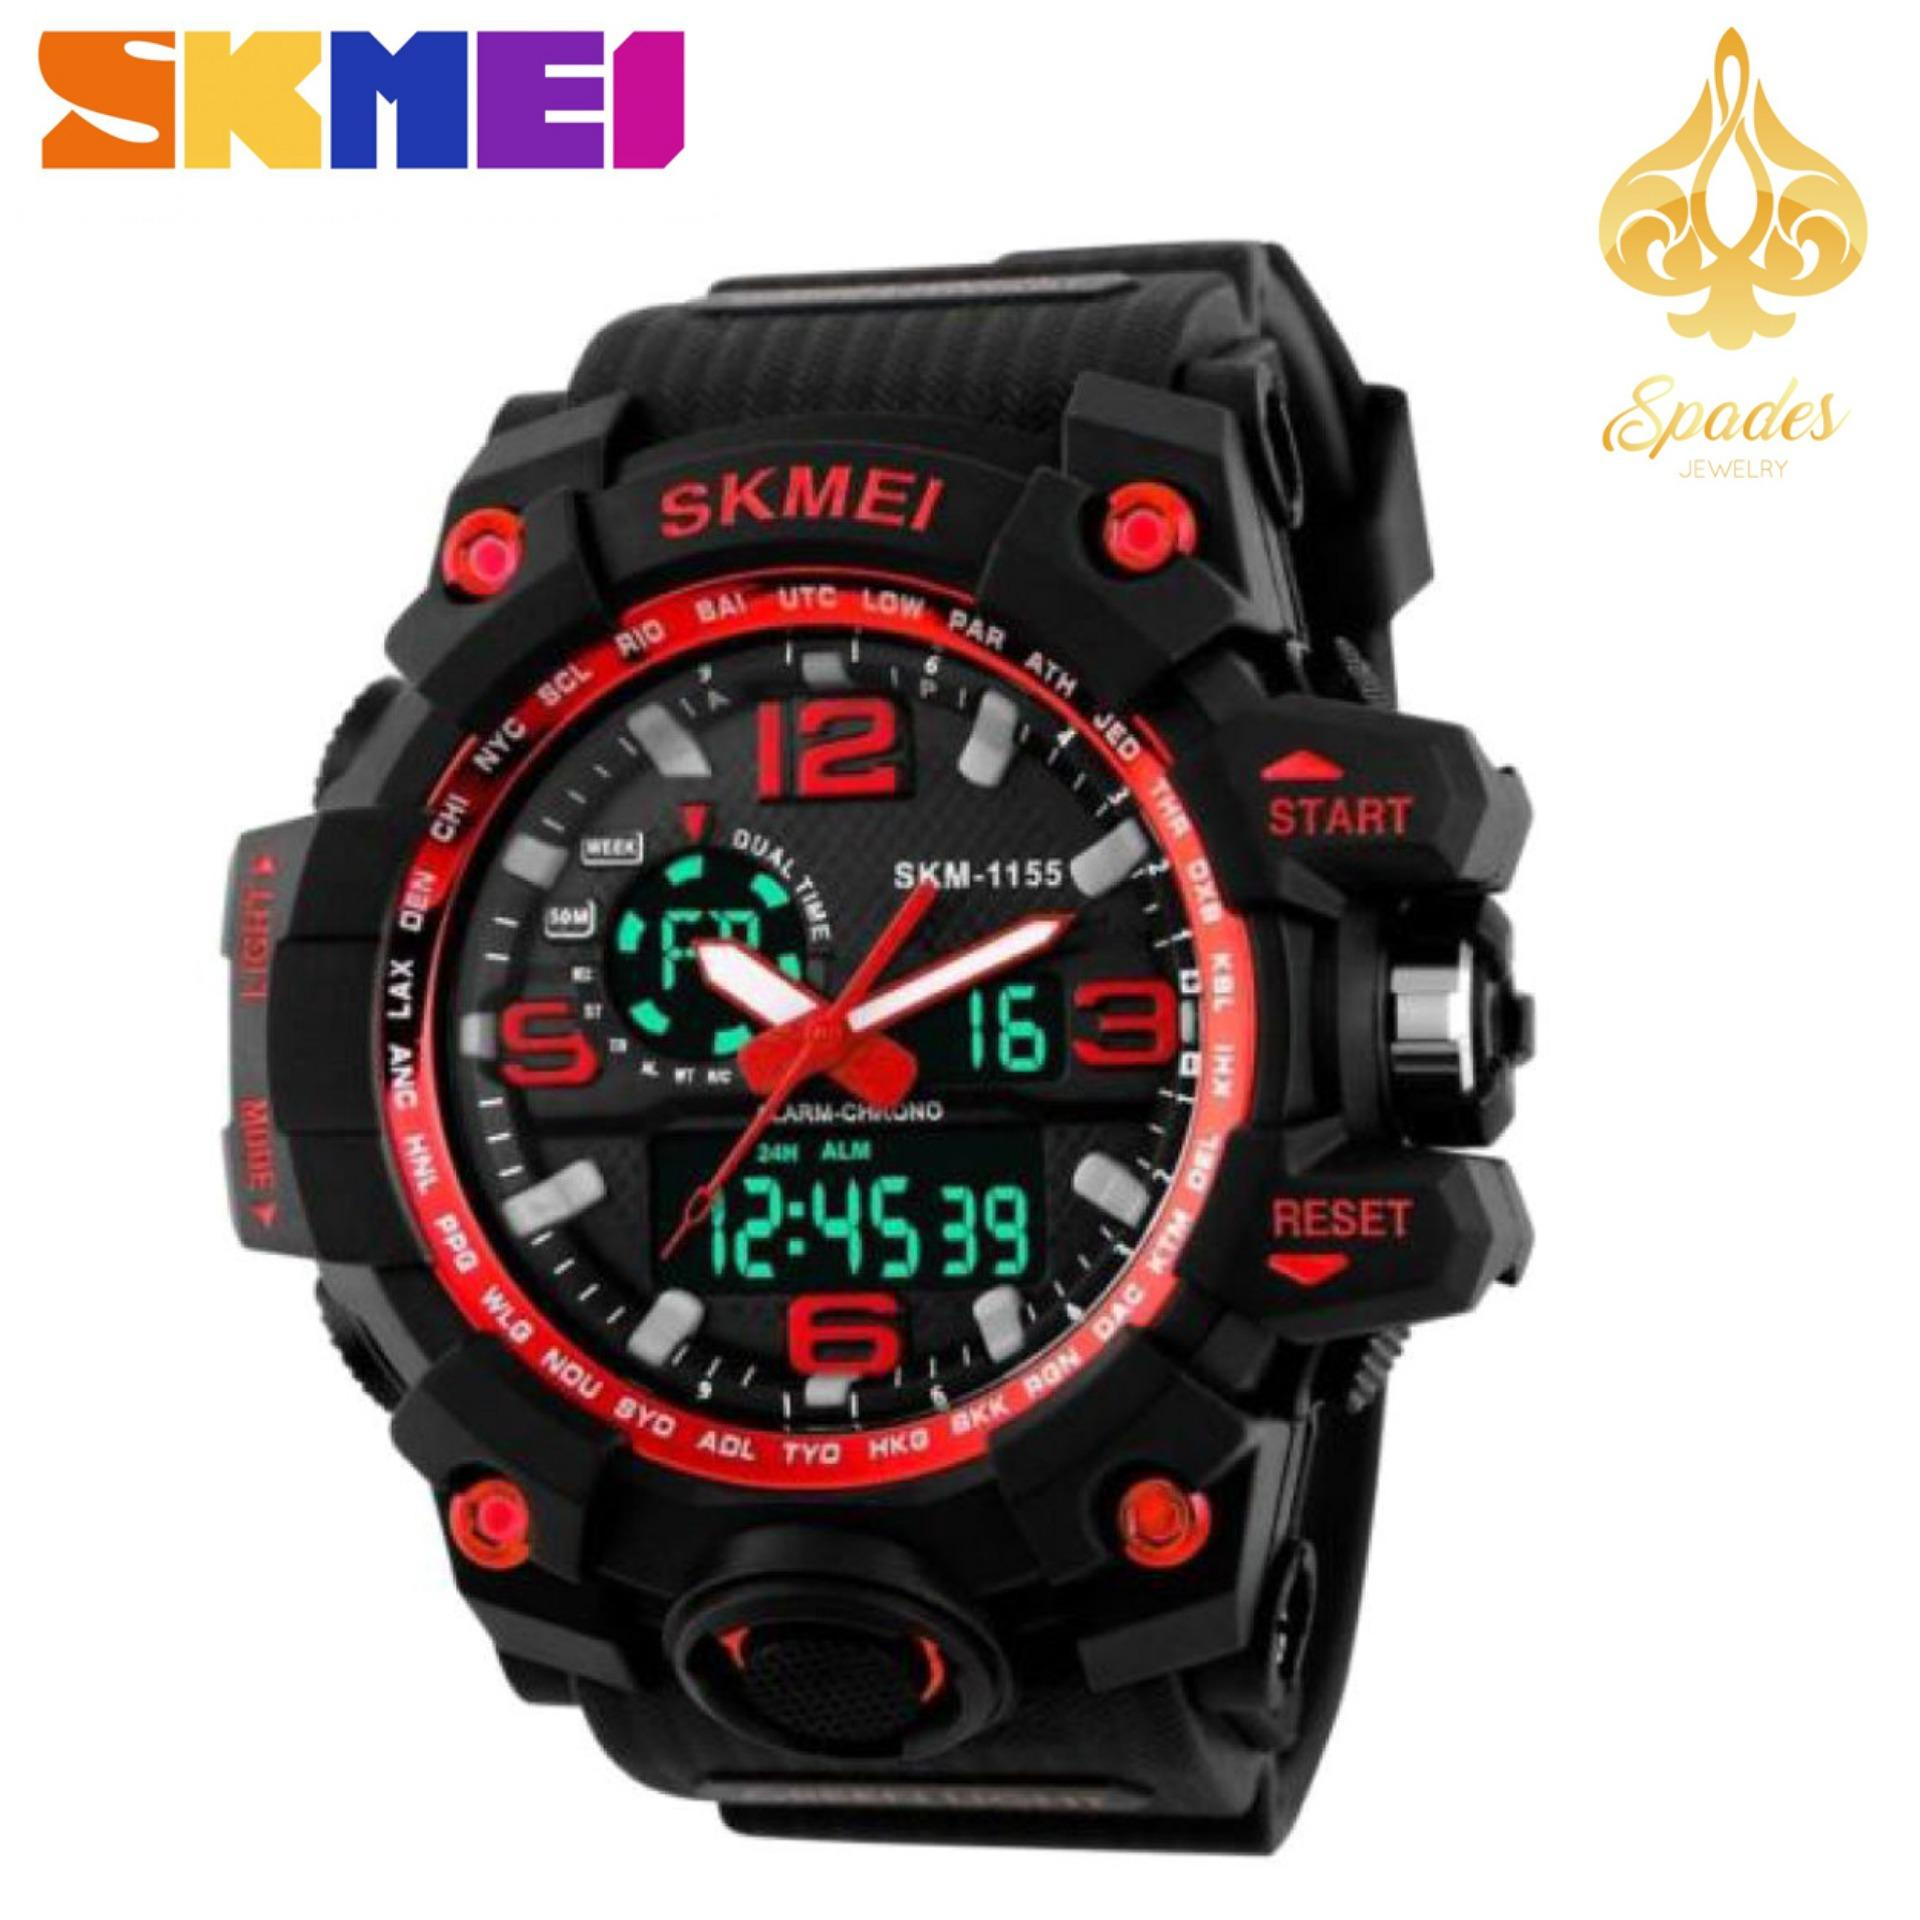 SKMEI 1155B Silicone Strap Men's Watch (Red)